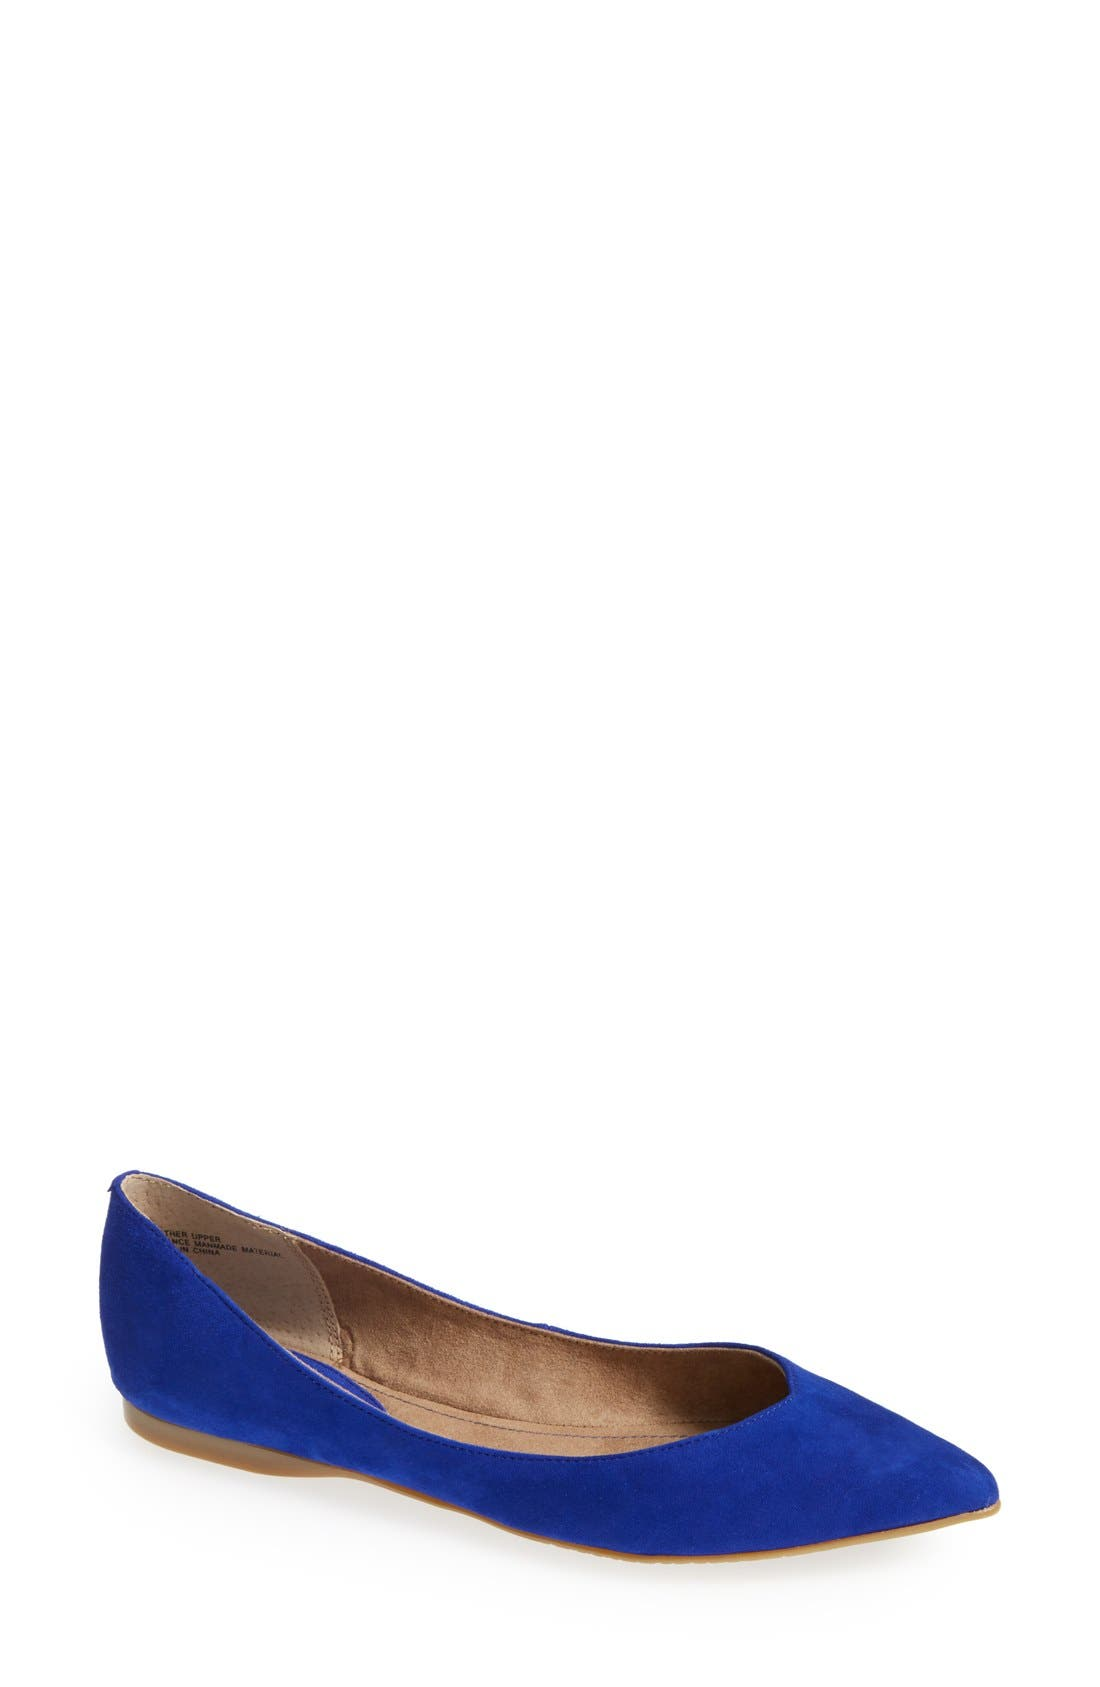 Main Image - BP. 'Moveover' Pointy Toe Leather Flat (Women)